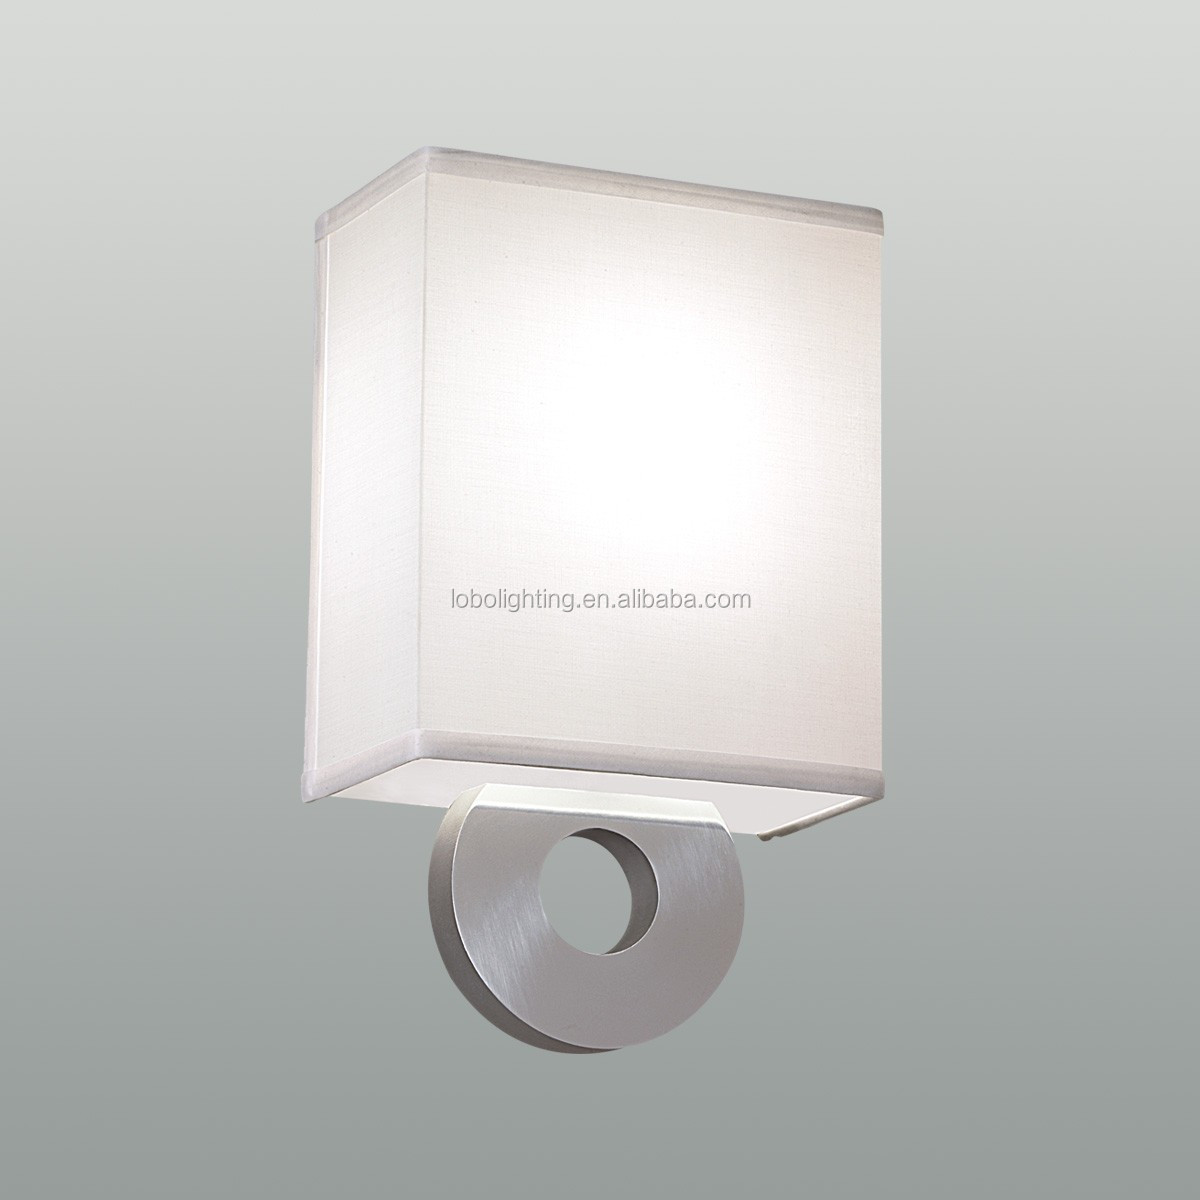 Hotel Double Wall Lamp with on/off rocker switch and power outlet at back plate